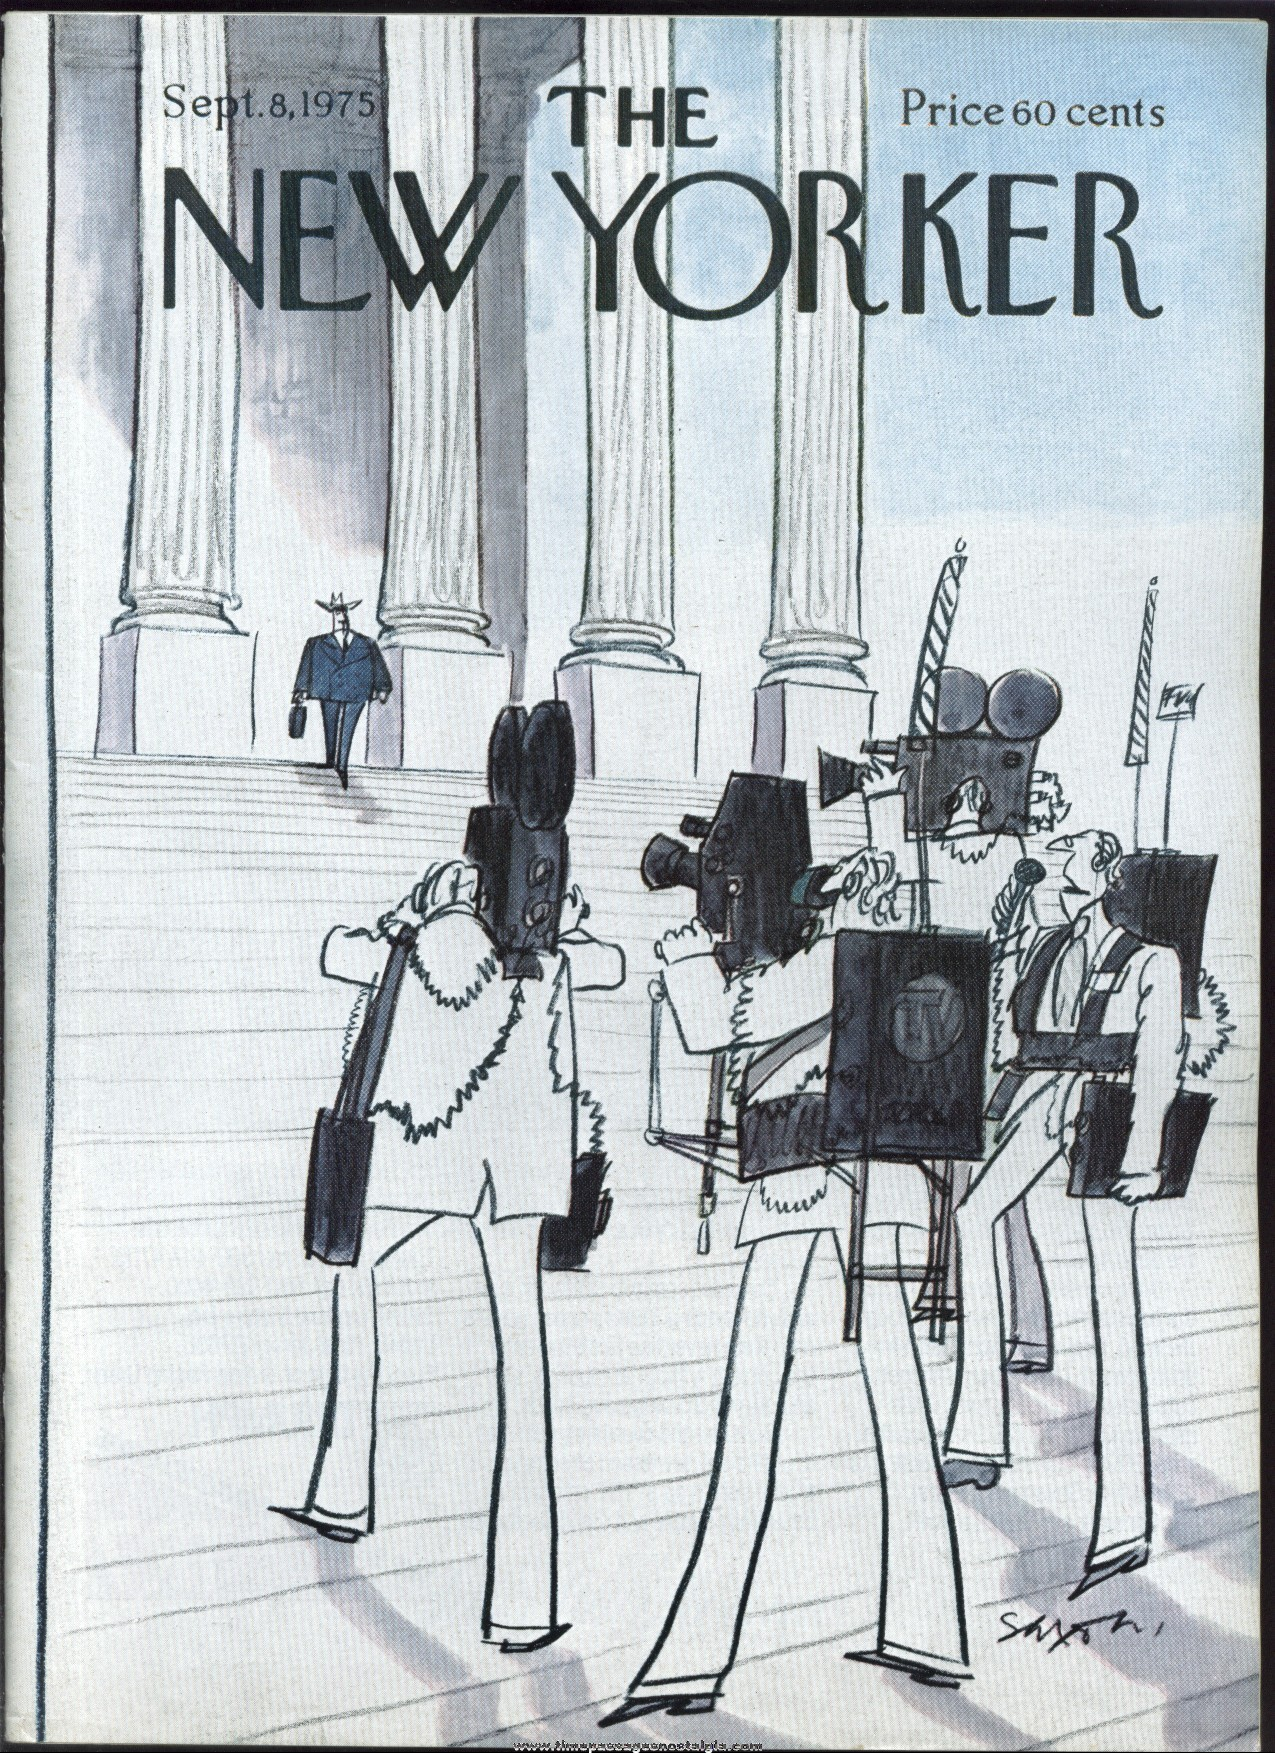 New Yorker Magazine - September 8, 1975 - Cover by Charles Saxon